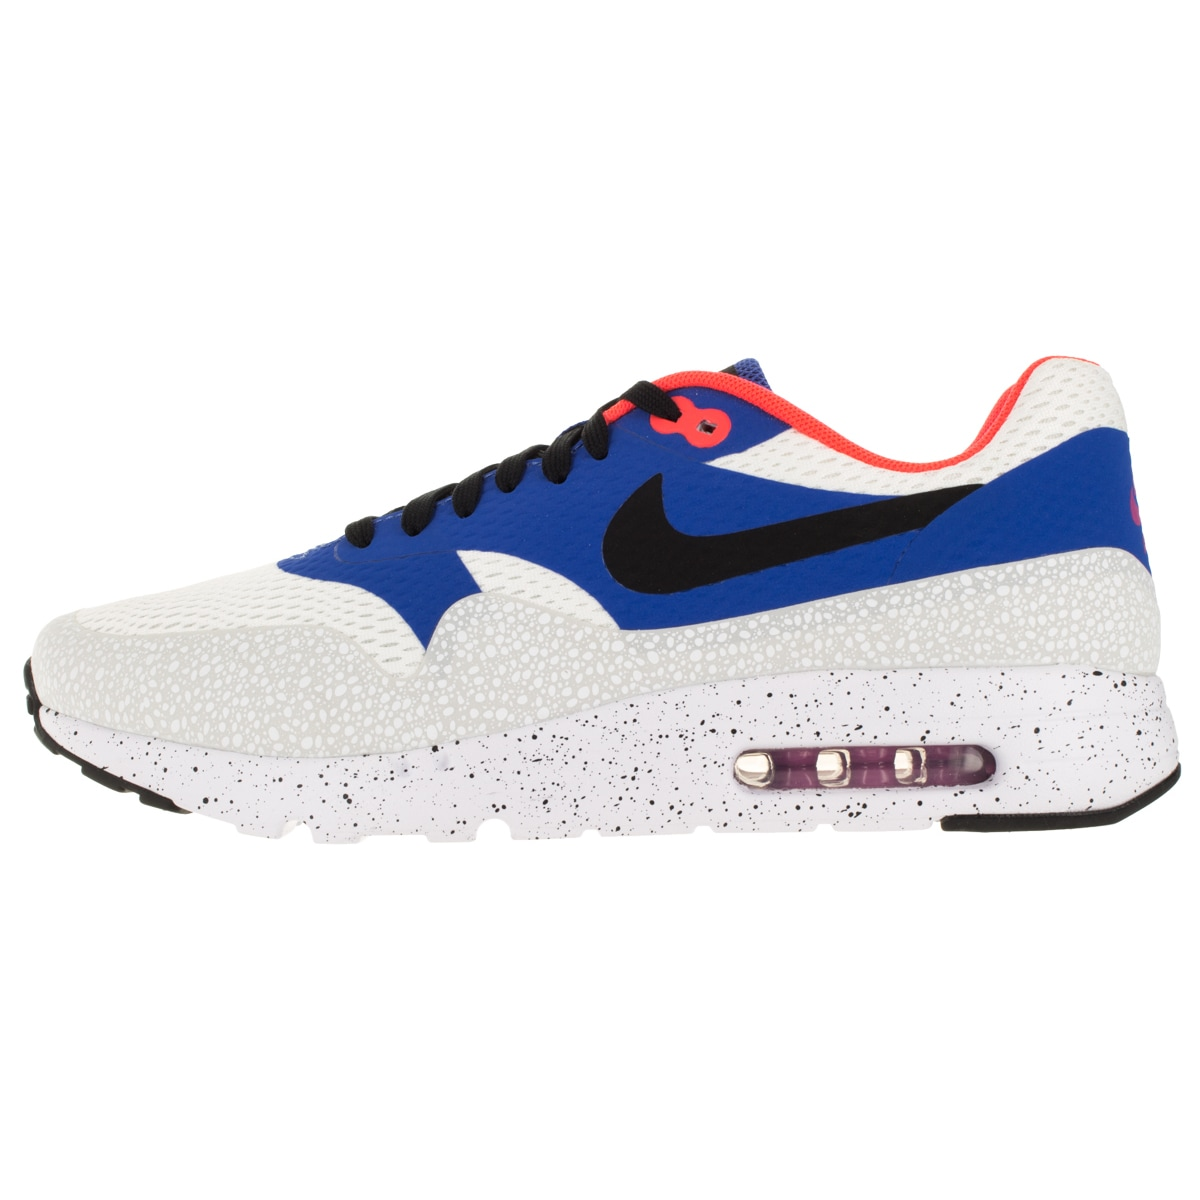 Nike Men's Air Max 1 Ultra Essential White/Black/Varsity Royal/Rflct Slvr  Running Shoe - Free Shipping Today - Overstock.com - 19160687